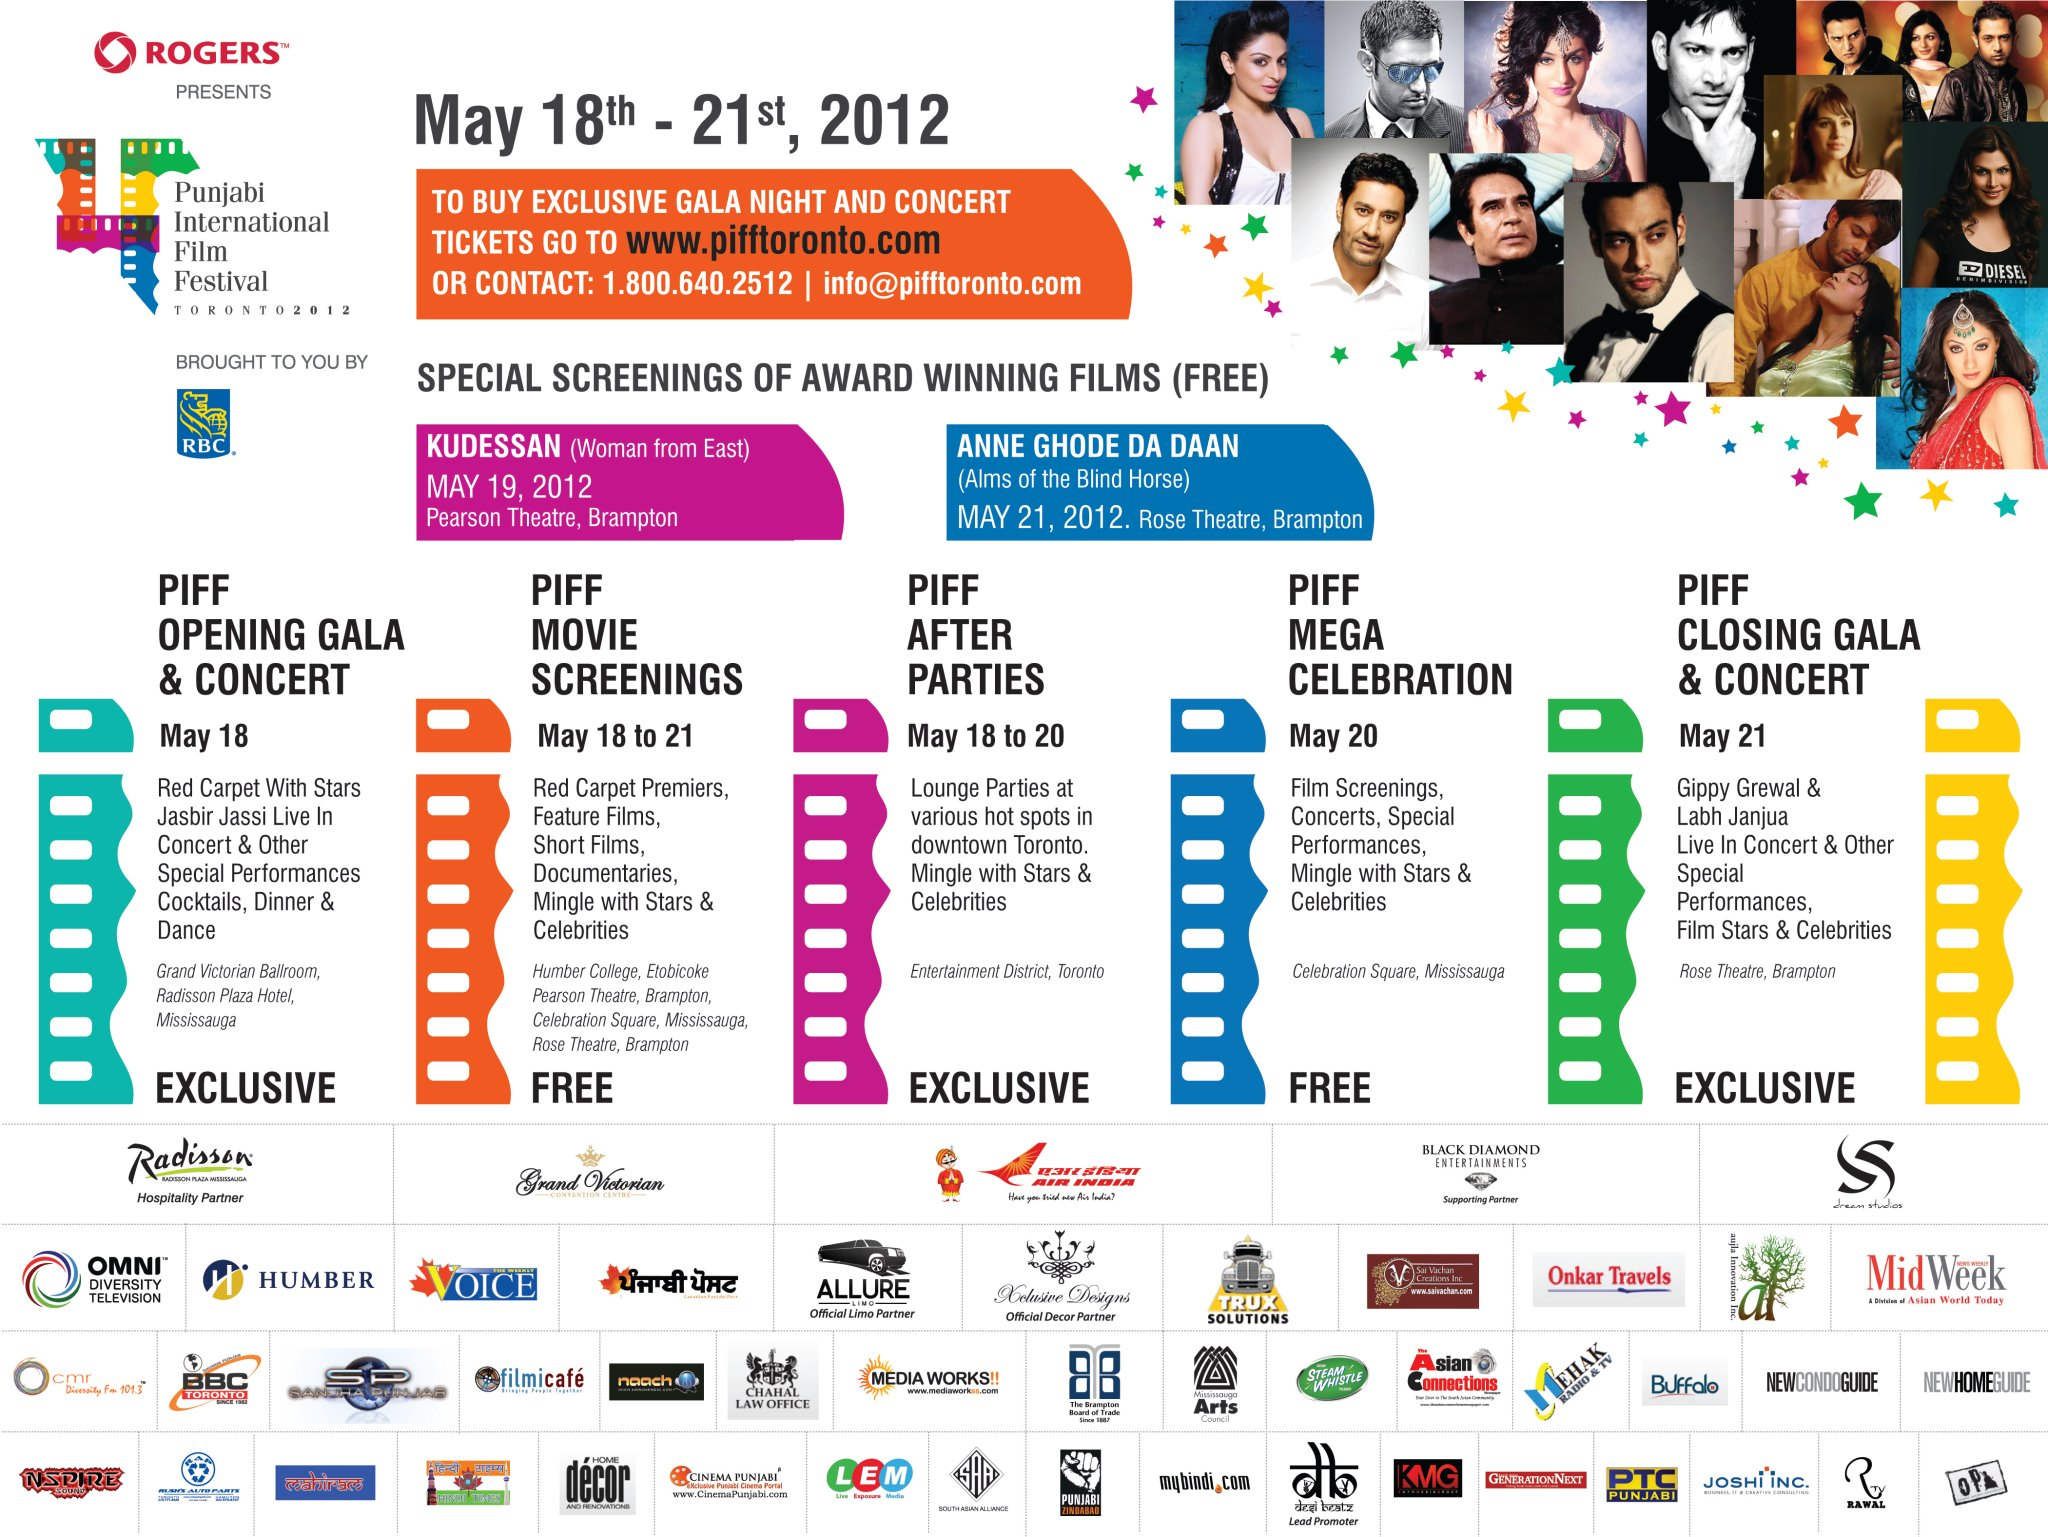 PIFF Sponsors &amp; Schedule 2012